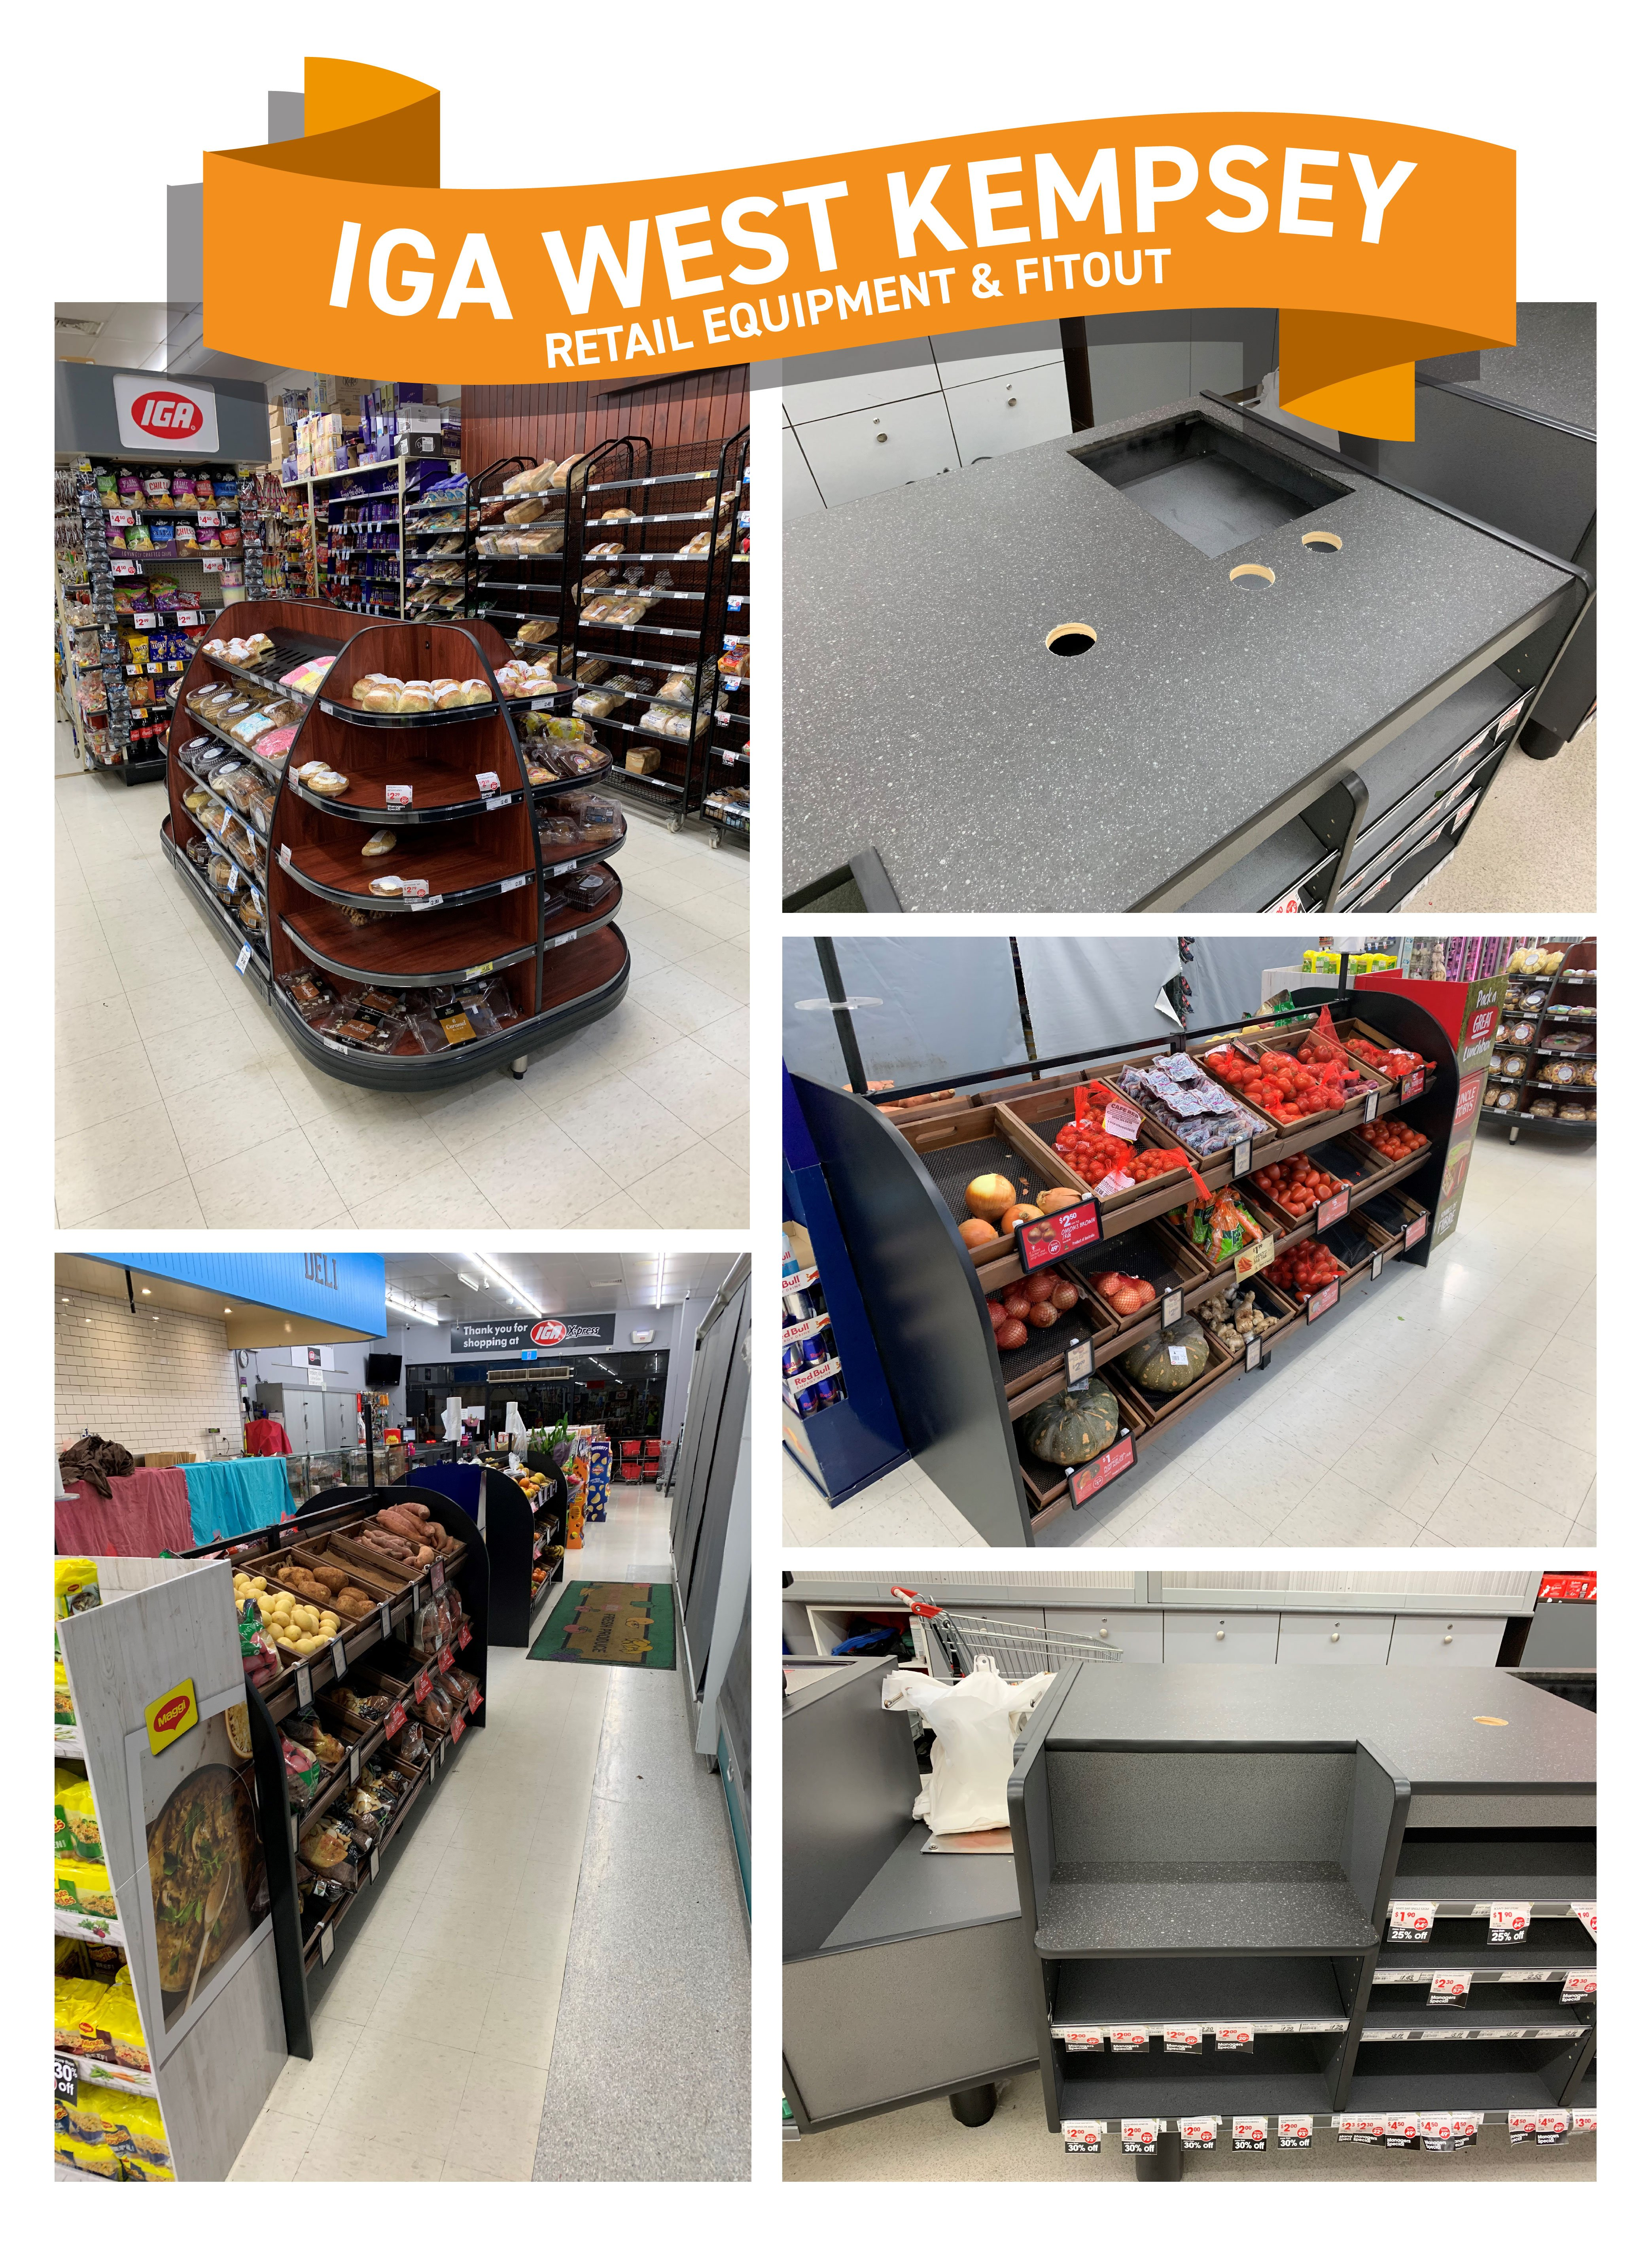 iga west kempsey recent projects